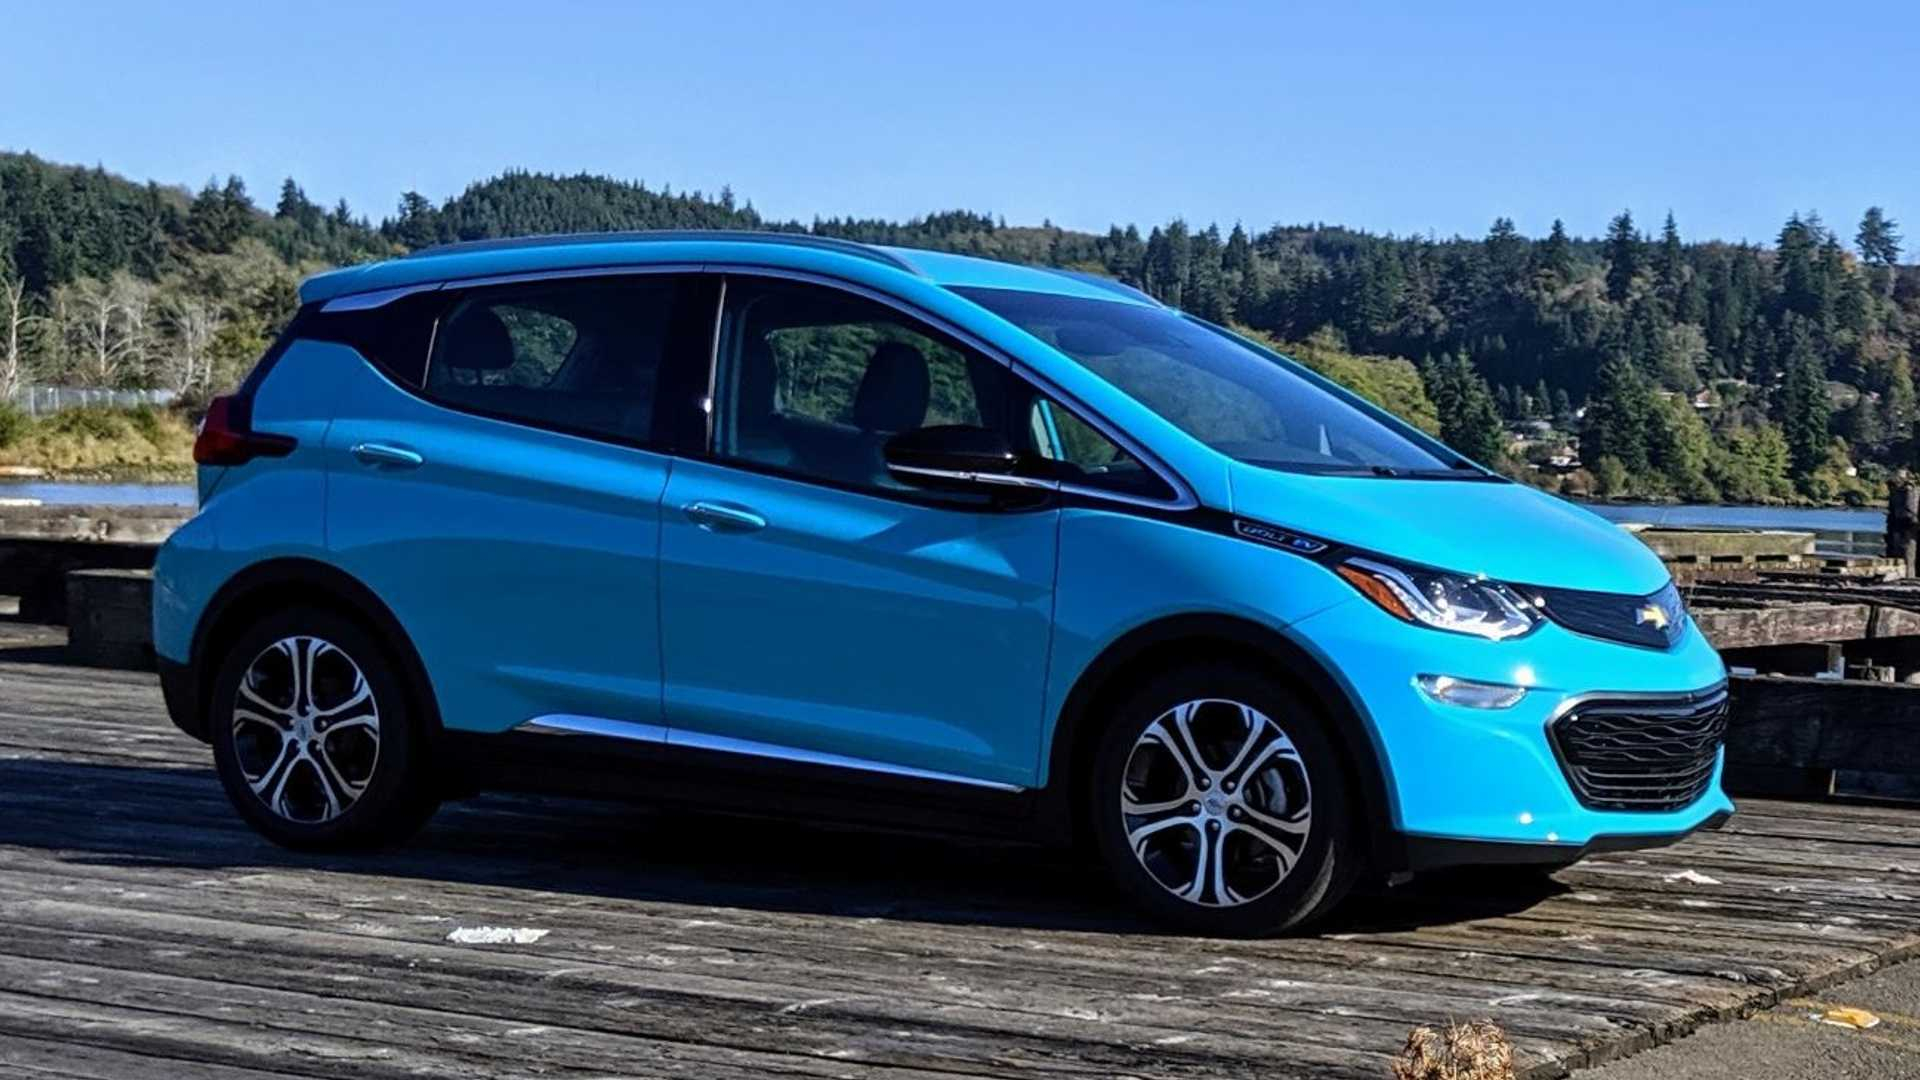 2021 Chevy Bolt: Everything We Know - Interior, Seats, Range 2021 Chevrolet Bolt Range, Specifications, Seats